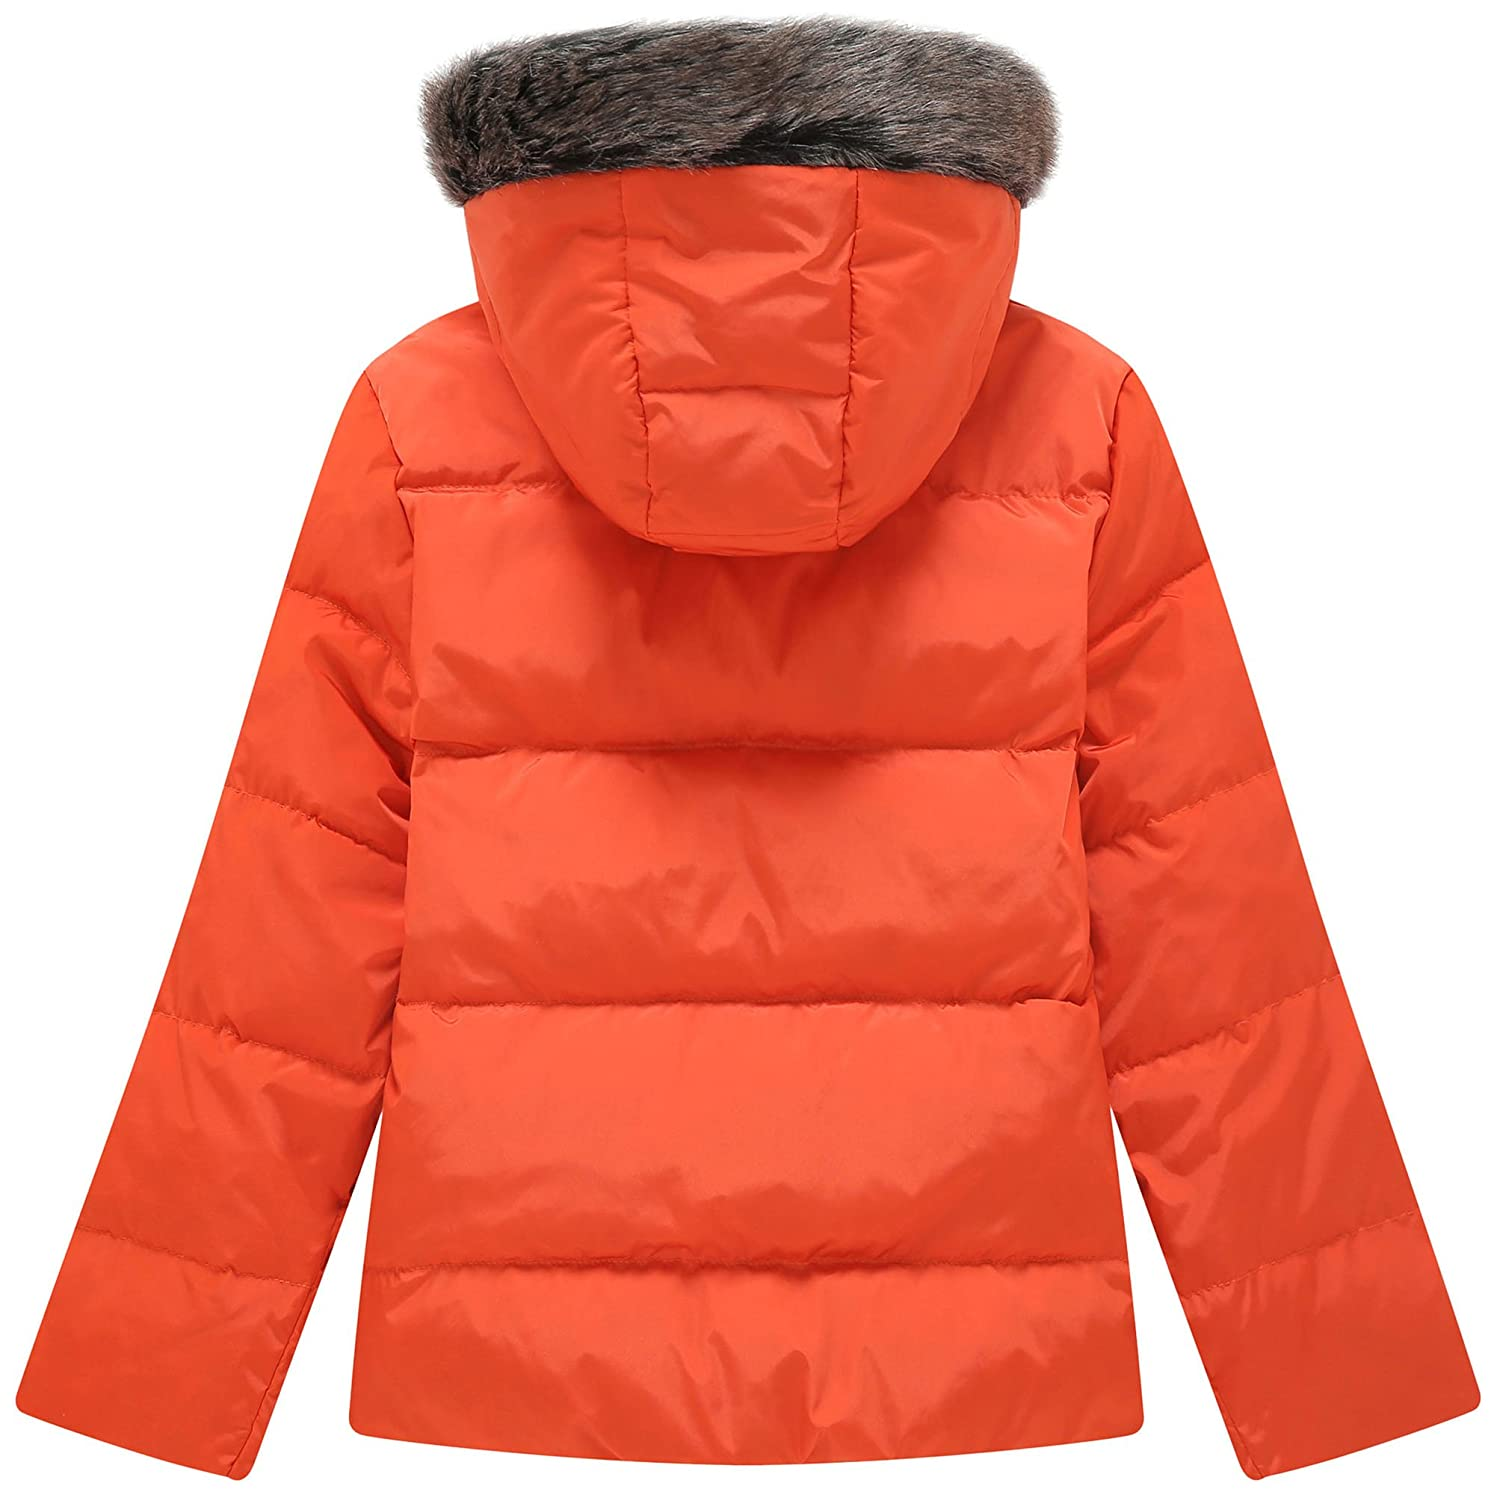 751106dd54aec Amazon.com  Wantdo Girl s Lightweight Down Jacket with Faux Fur Collar  Hooded Puffer Winter Coat  Clothing